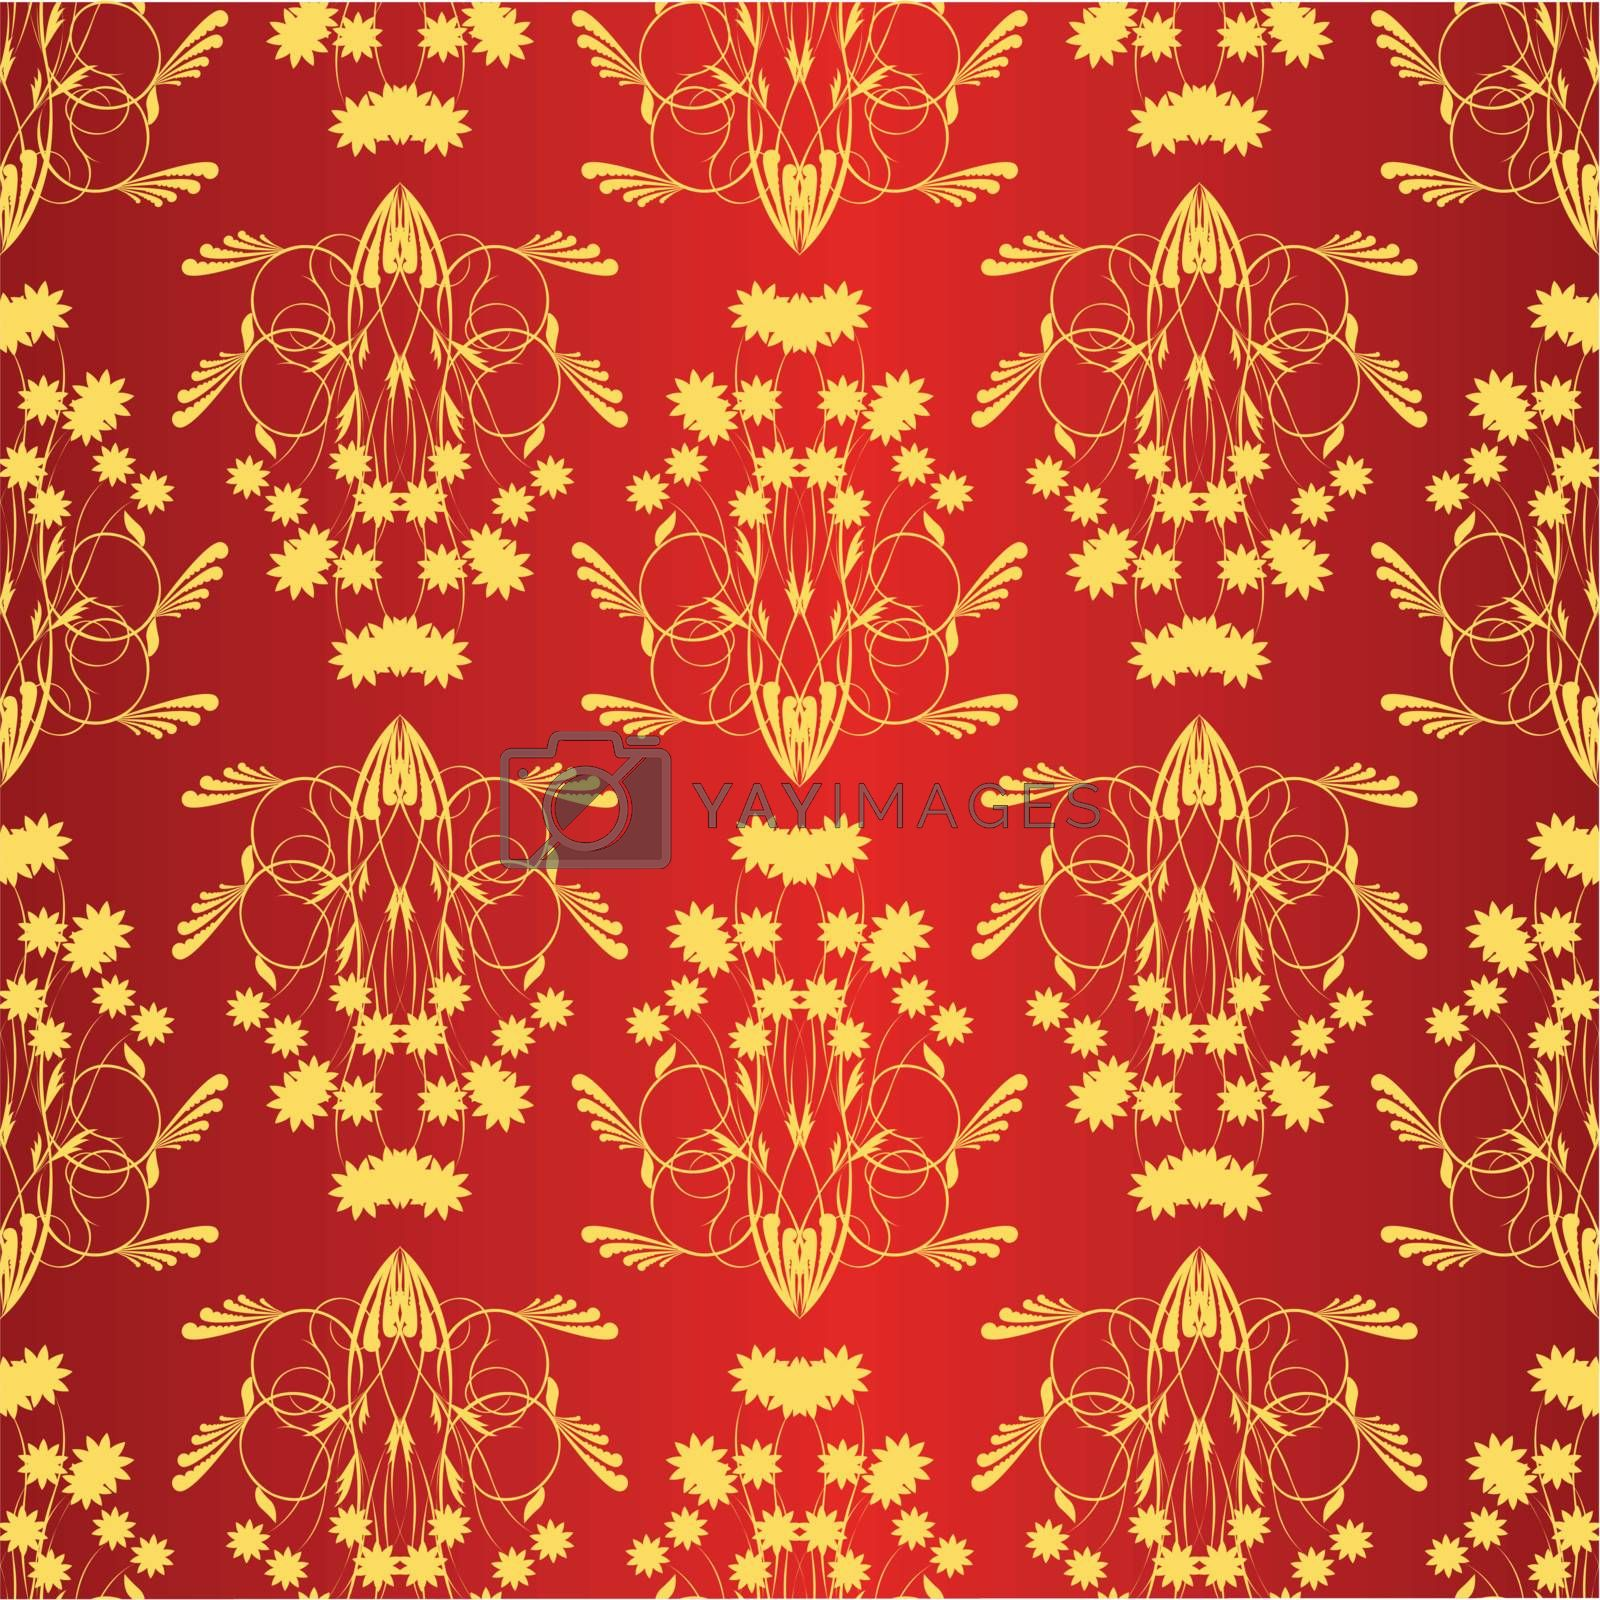 seamless texture yellow pattern on red background